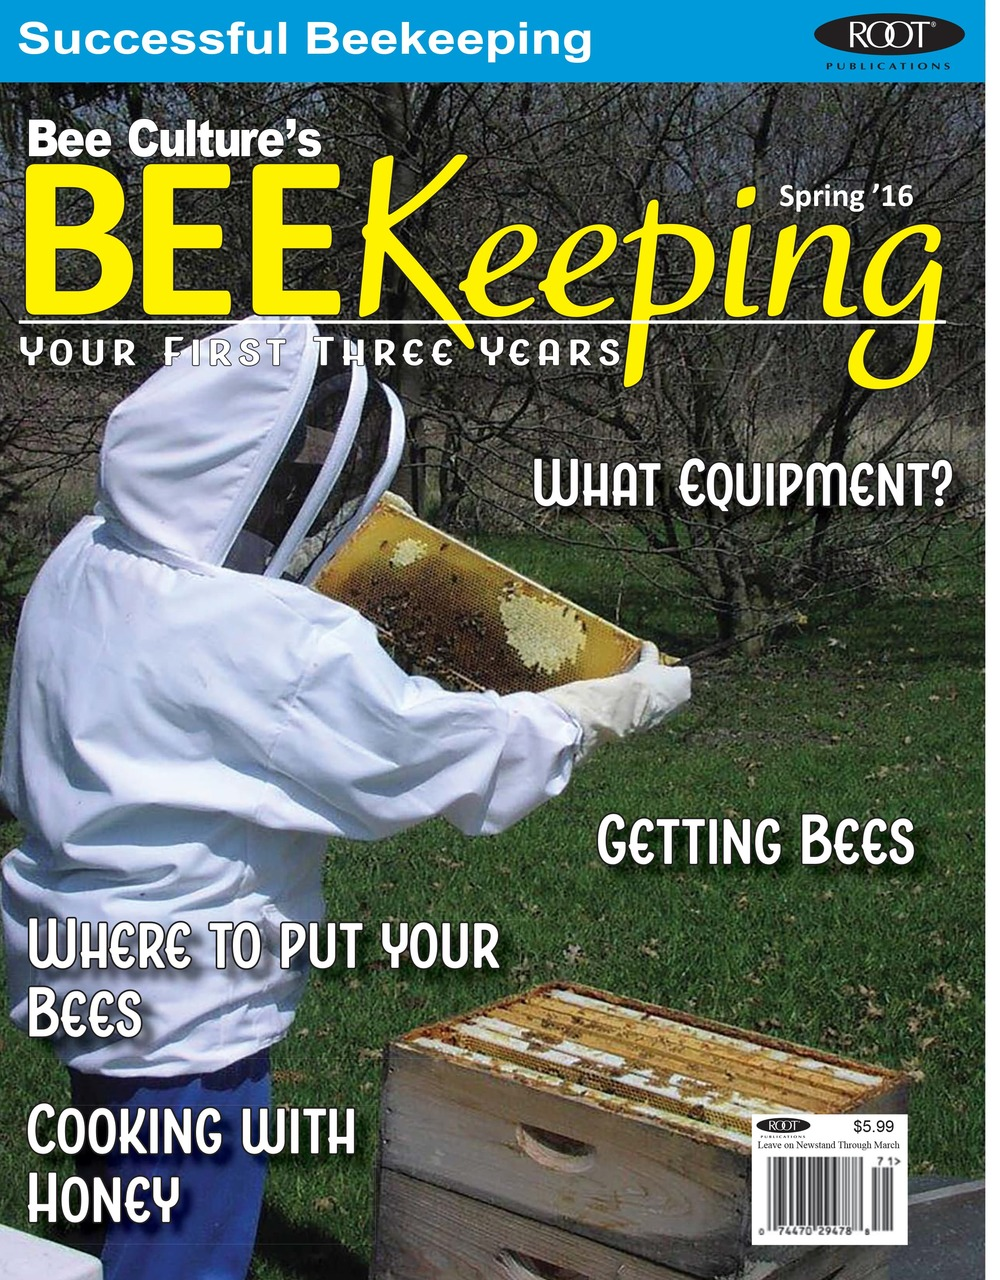 BEEKeeping Your First 3 Years - USA Subscription